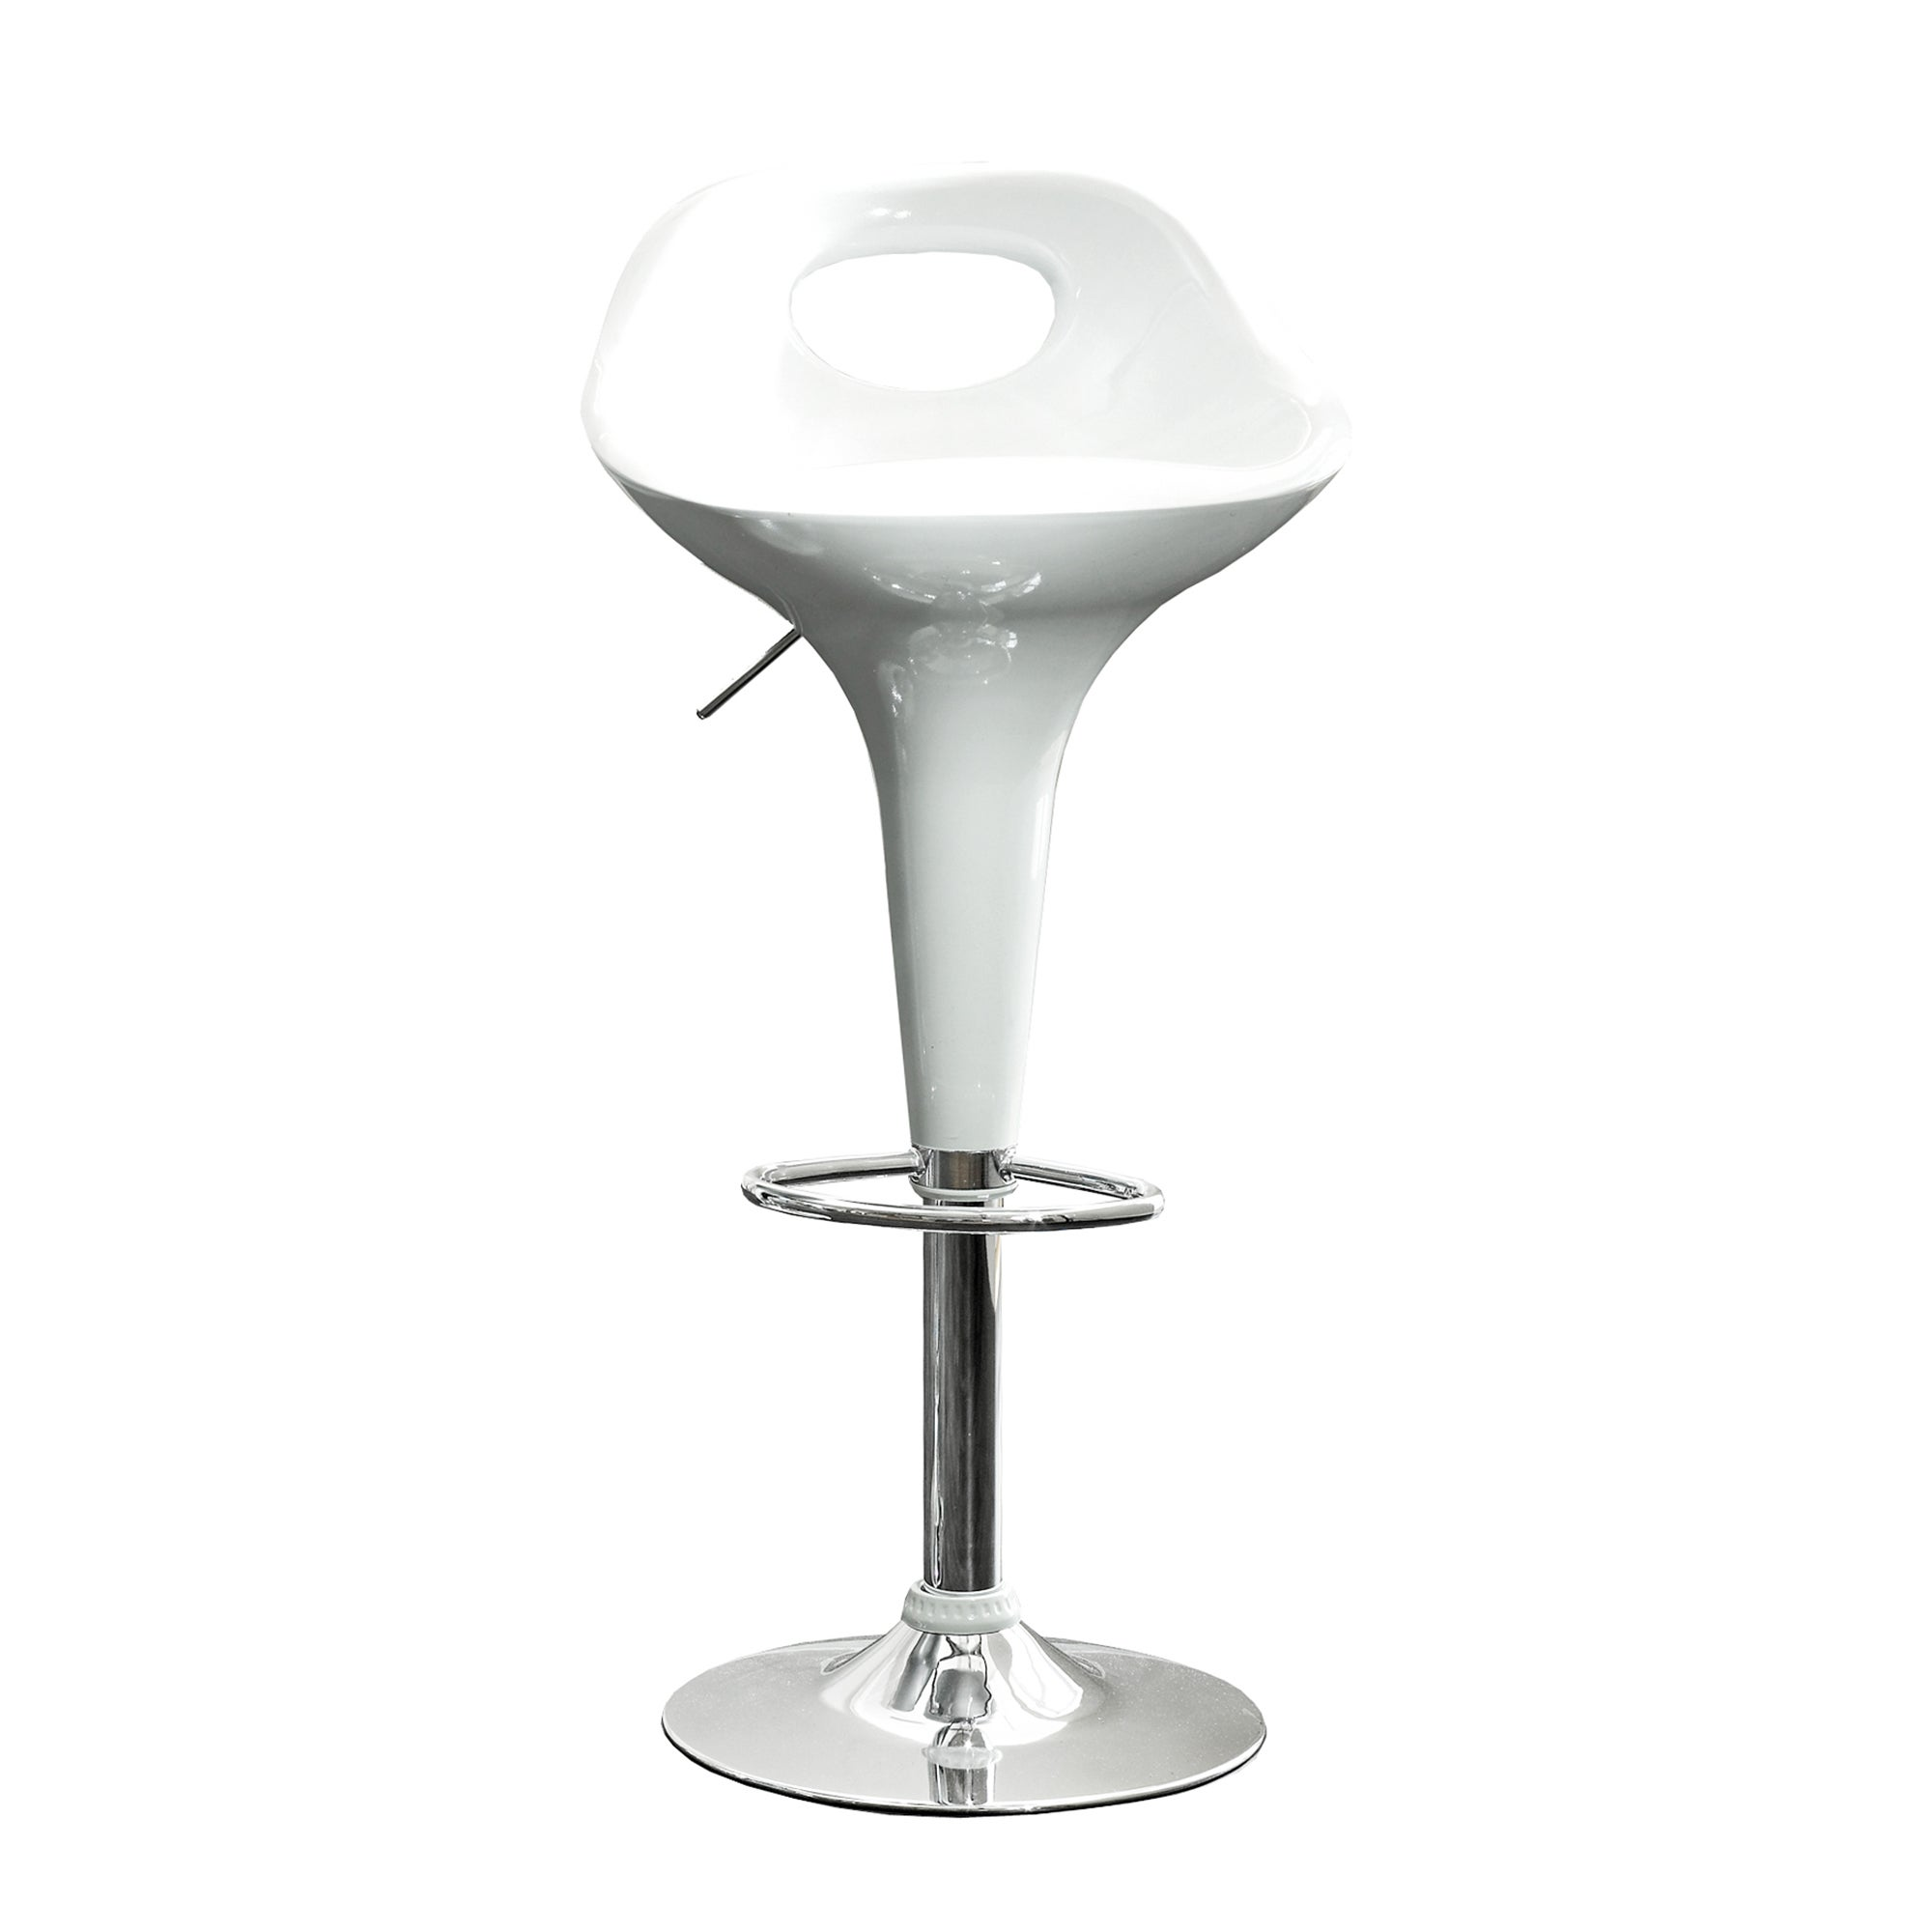 Comet Gas Lift Bar Stool